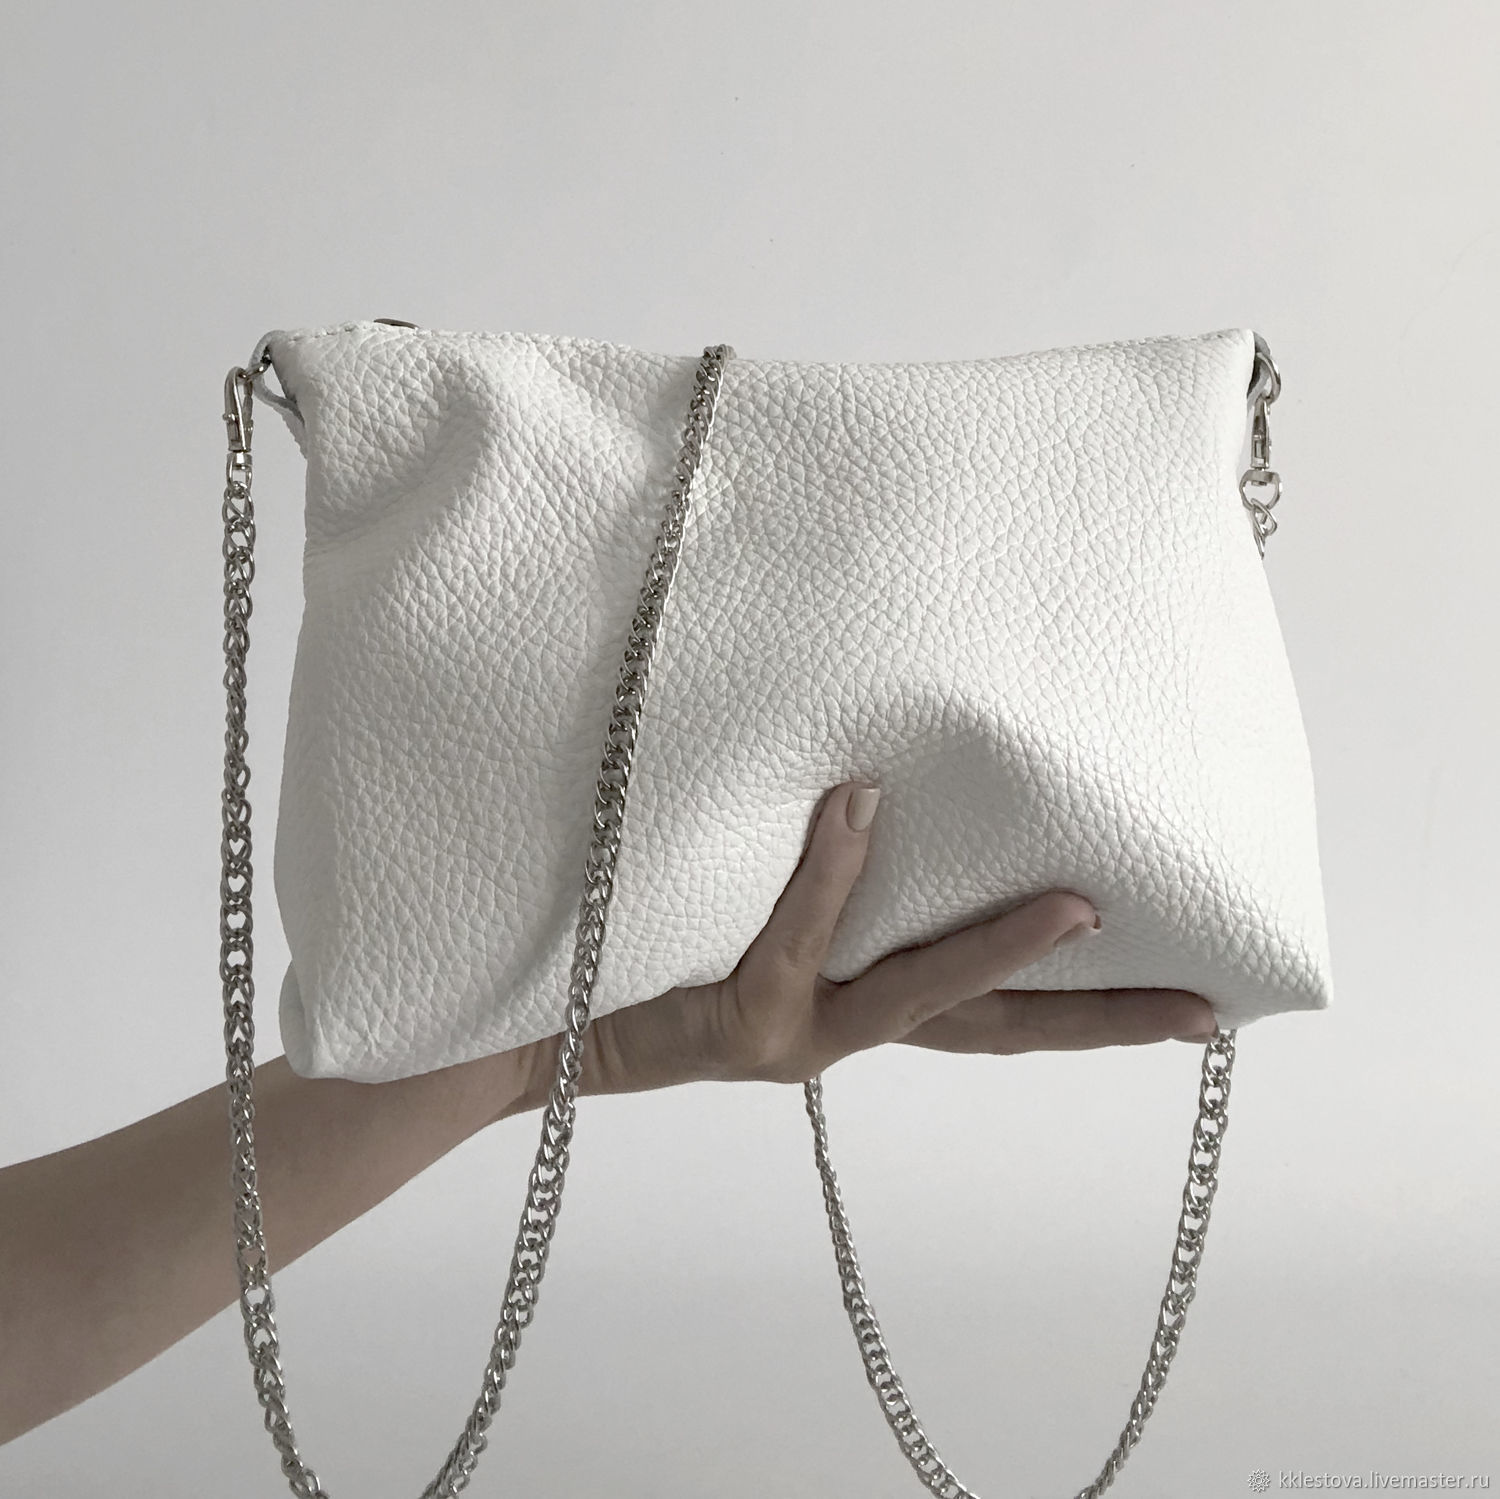 White leather crossbody bag with chain evening Clutch, Clutches, Moscow,  Фото №1